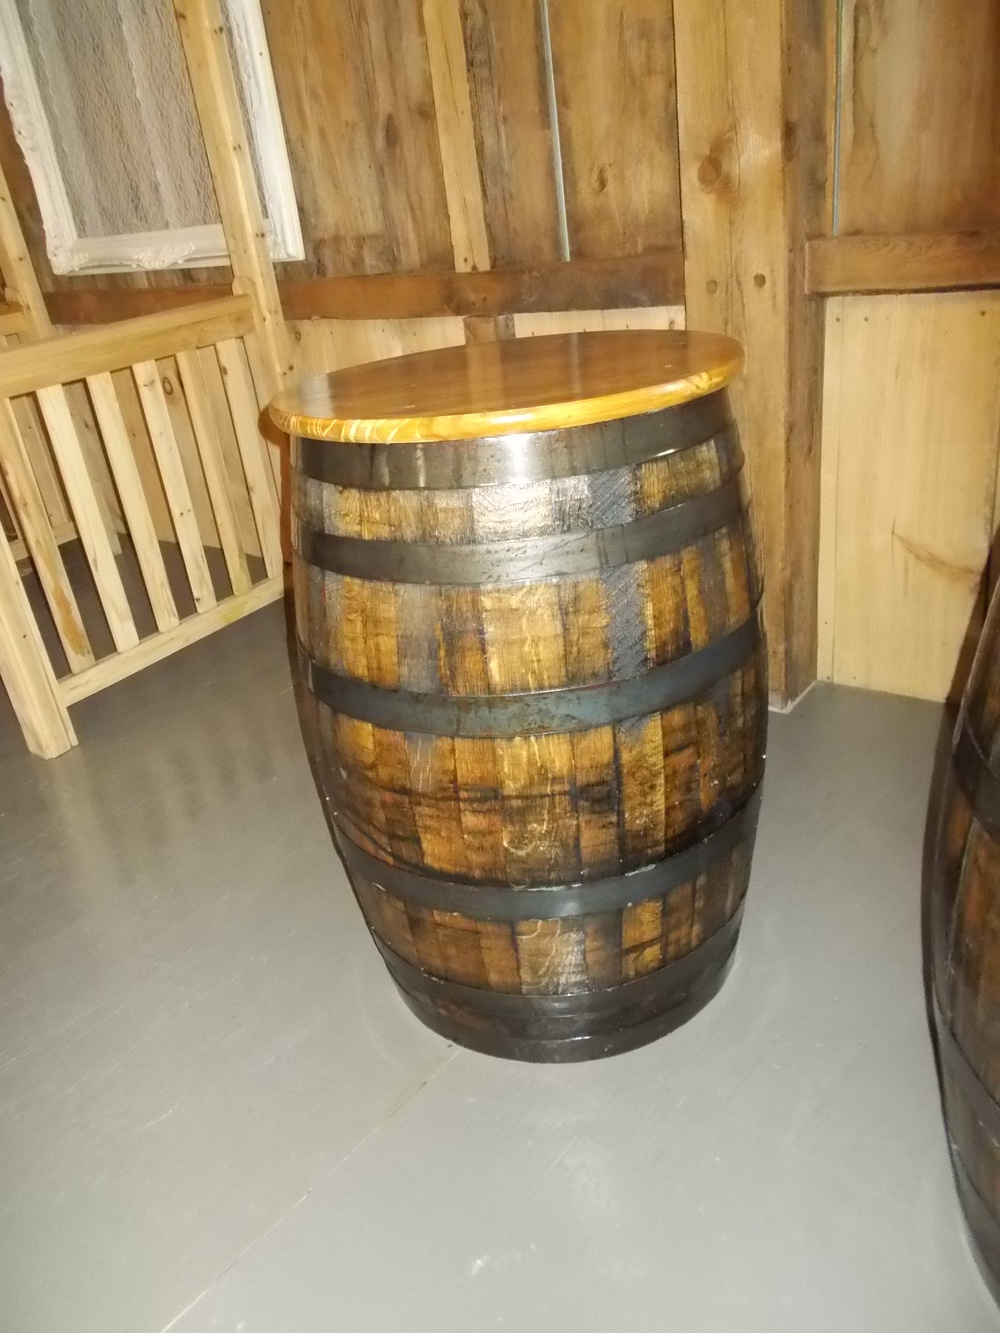 whiskey barrel 1.JPG